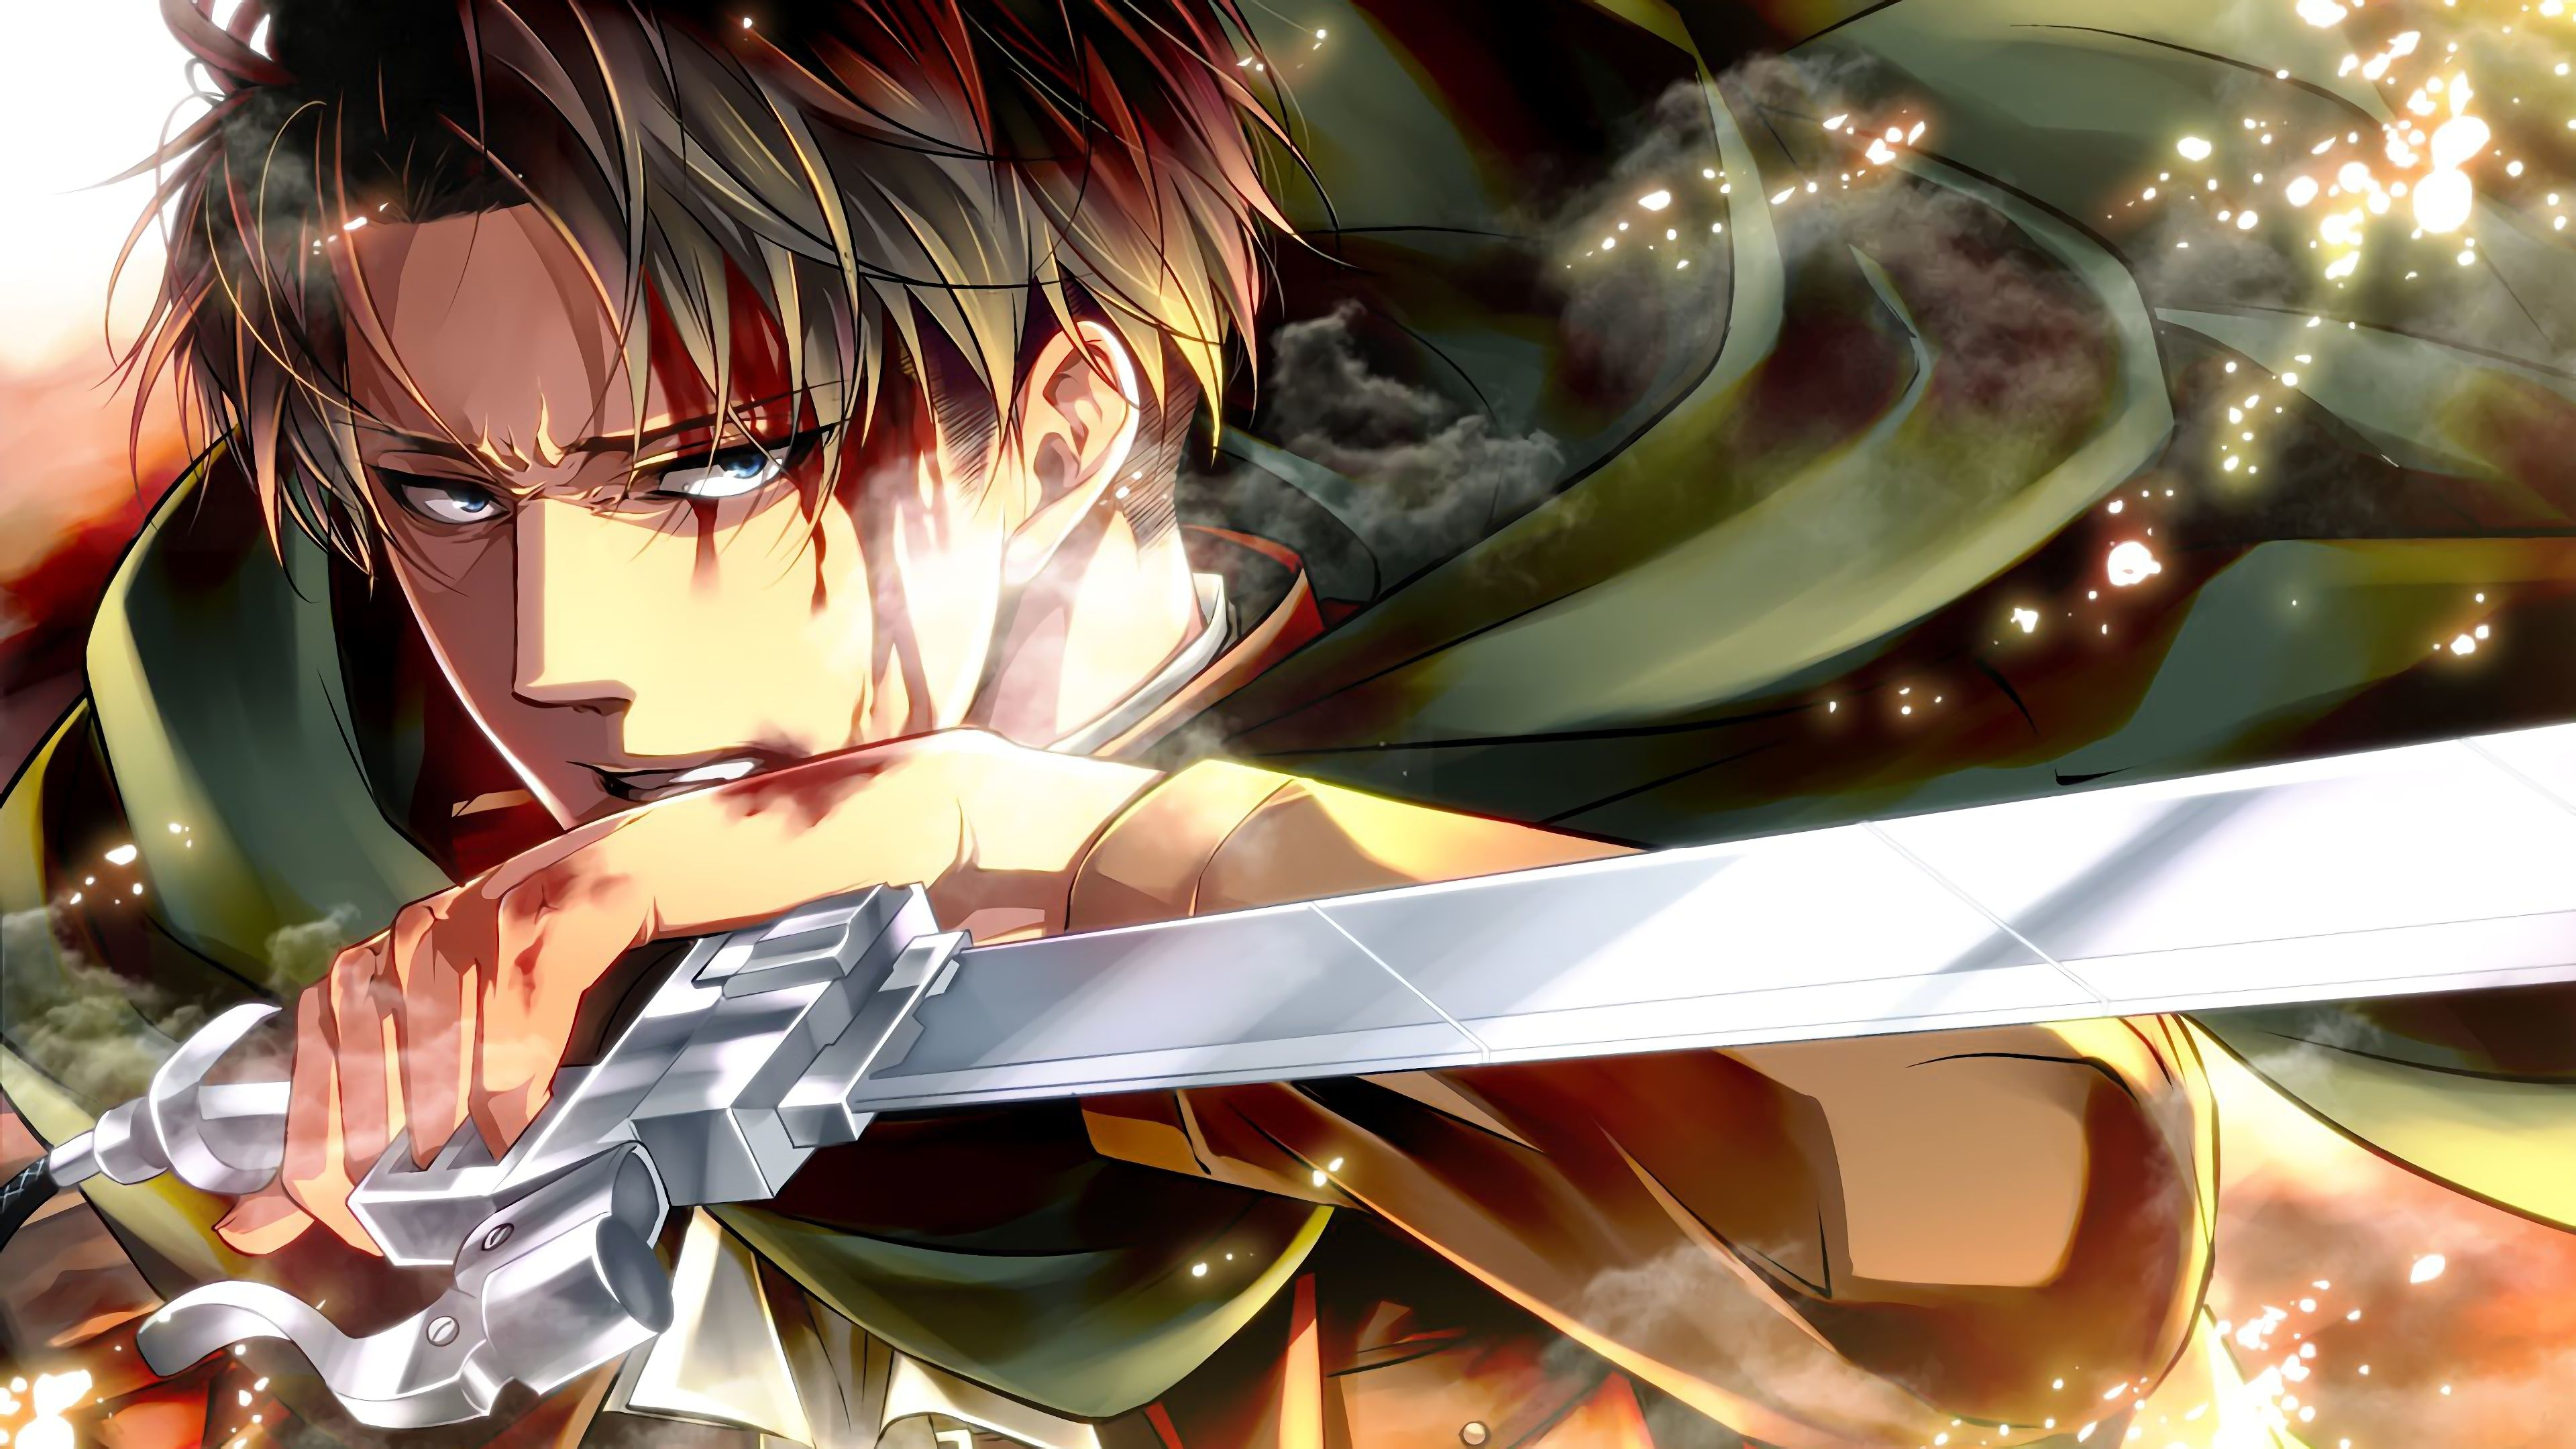 Levi Attack On Titan Shingeki No Kyojin 4k 19284 Attack On Titan Levi Attack On Titan Anime Attack On Titan Art